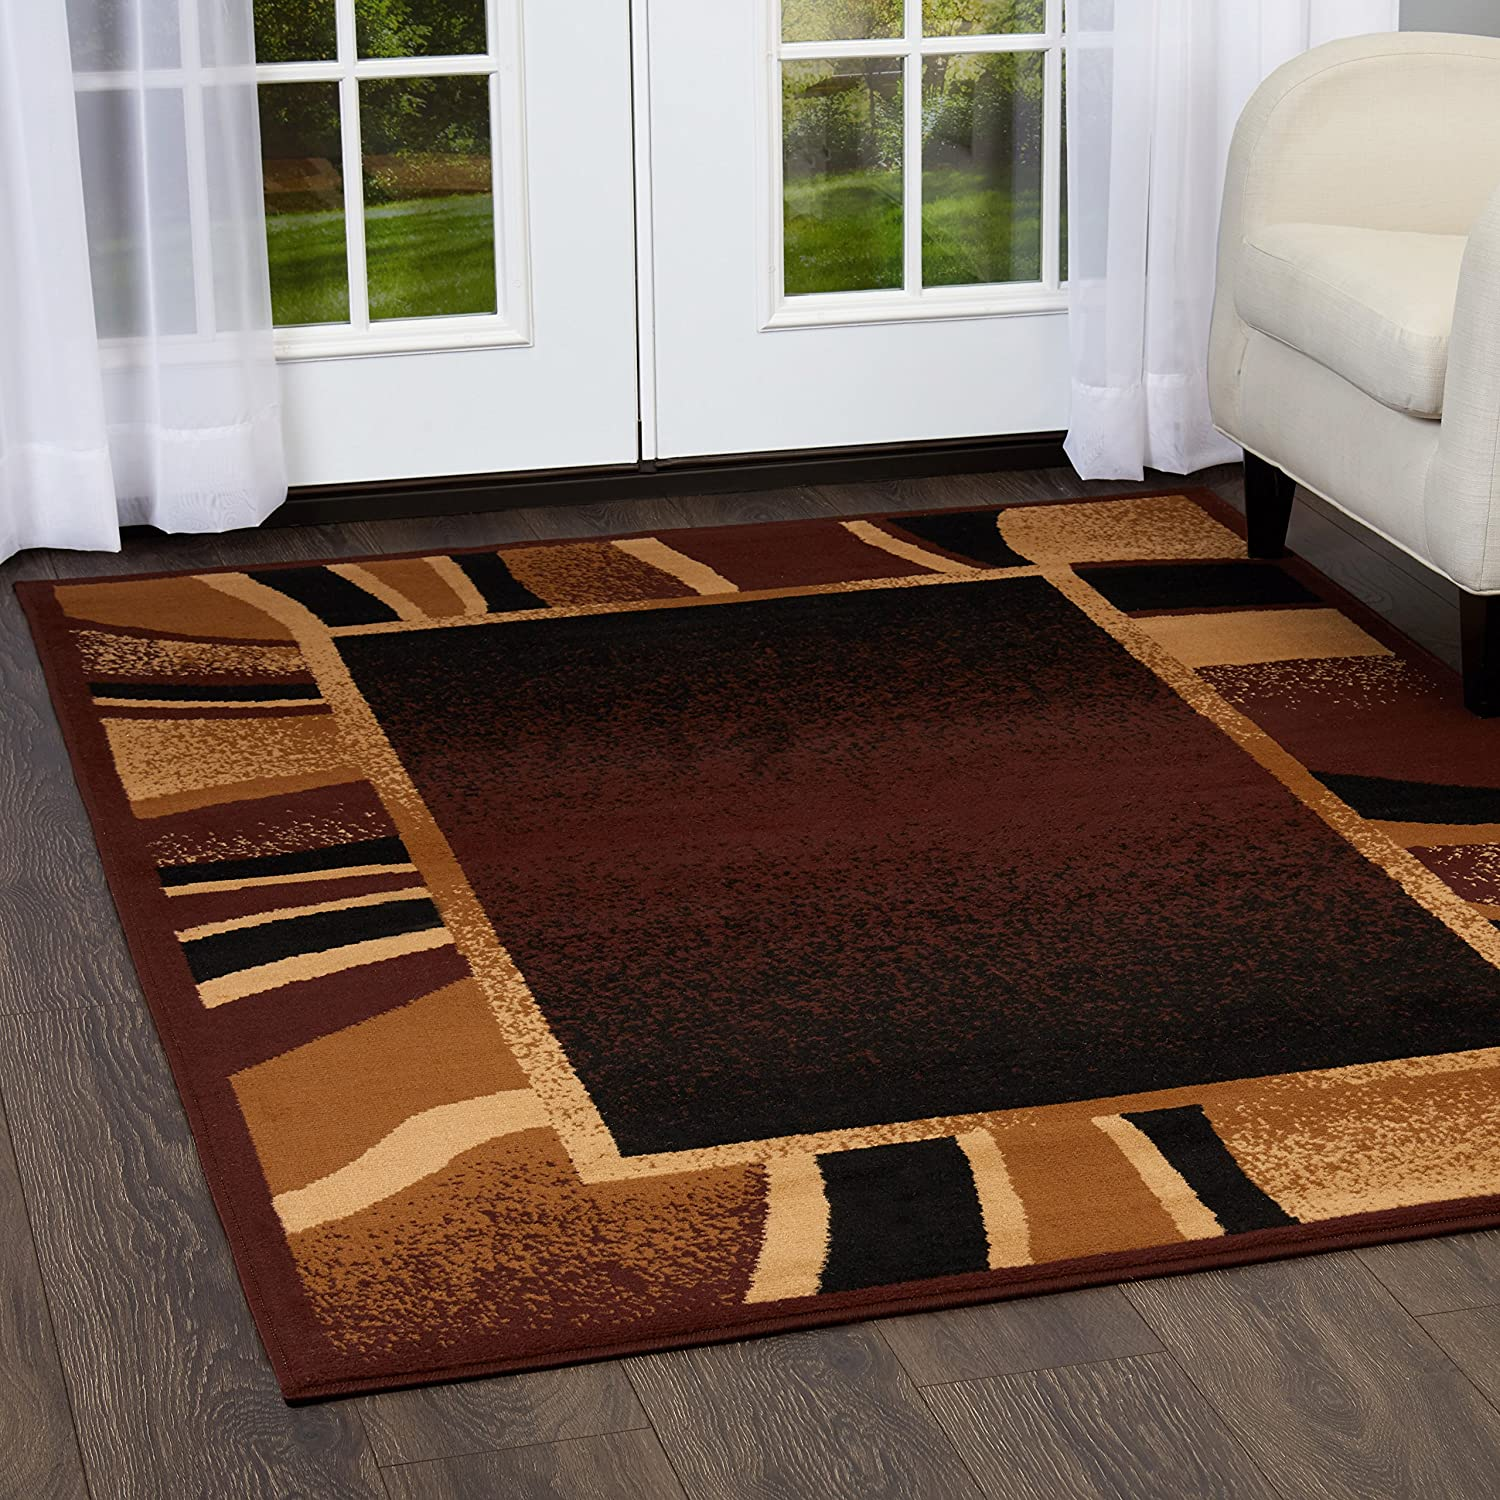 Home Dynamix Premium 7542-500 Polypropylene 1-Feet 9-Inch by 7-Feet 2-Inch Area Rug, Brown